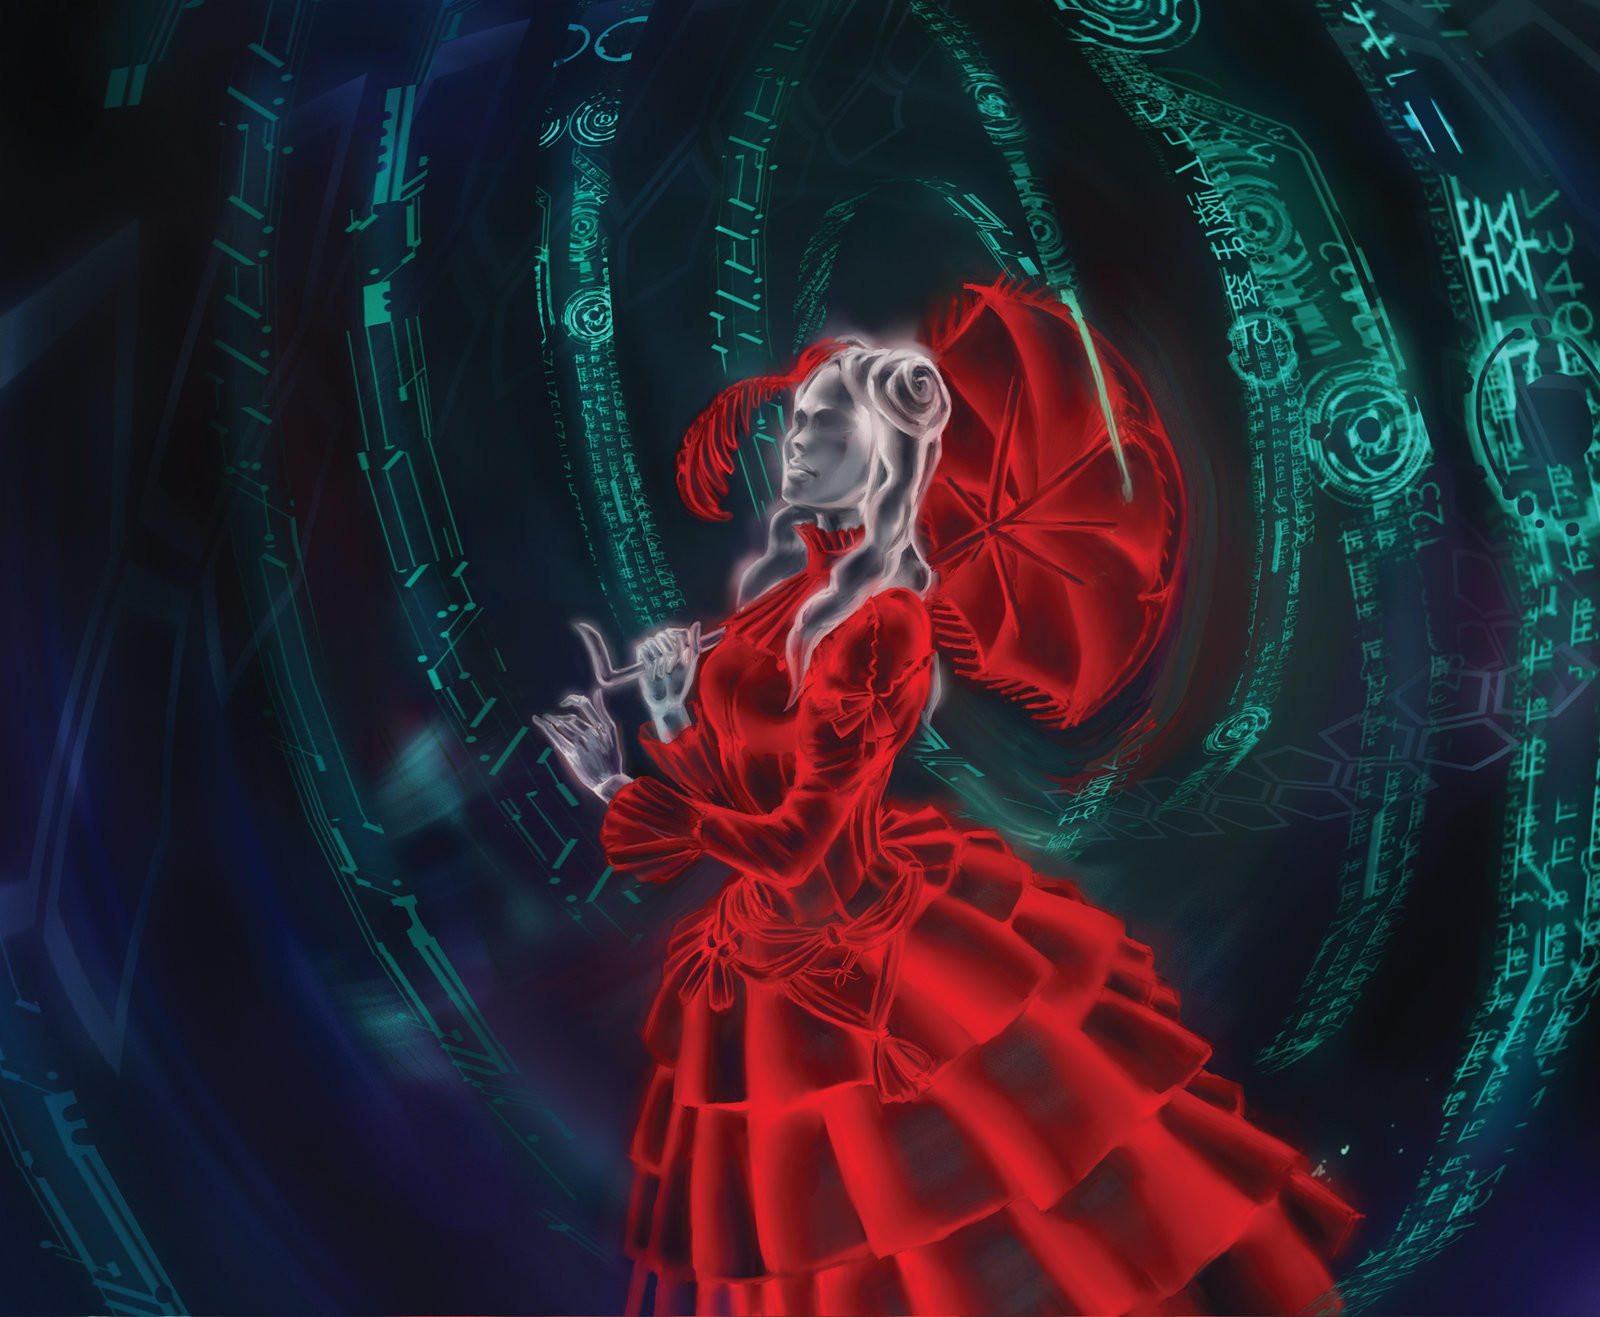 Bruno balixa netrunner woman in red dress by jumpei d6y7kfk